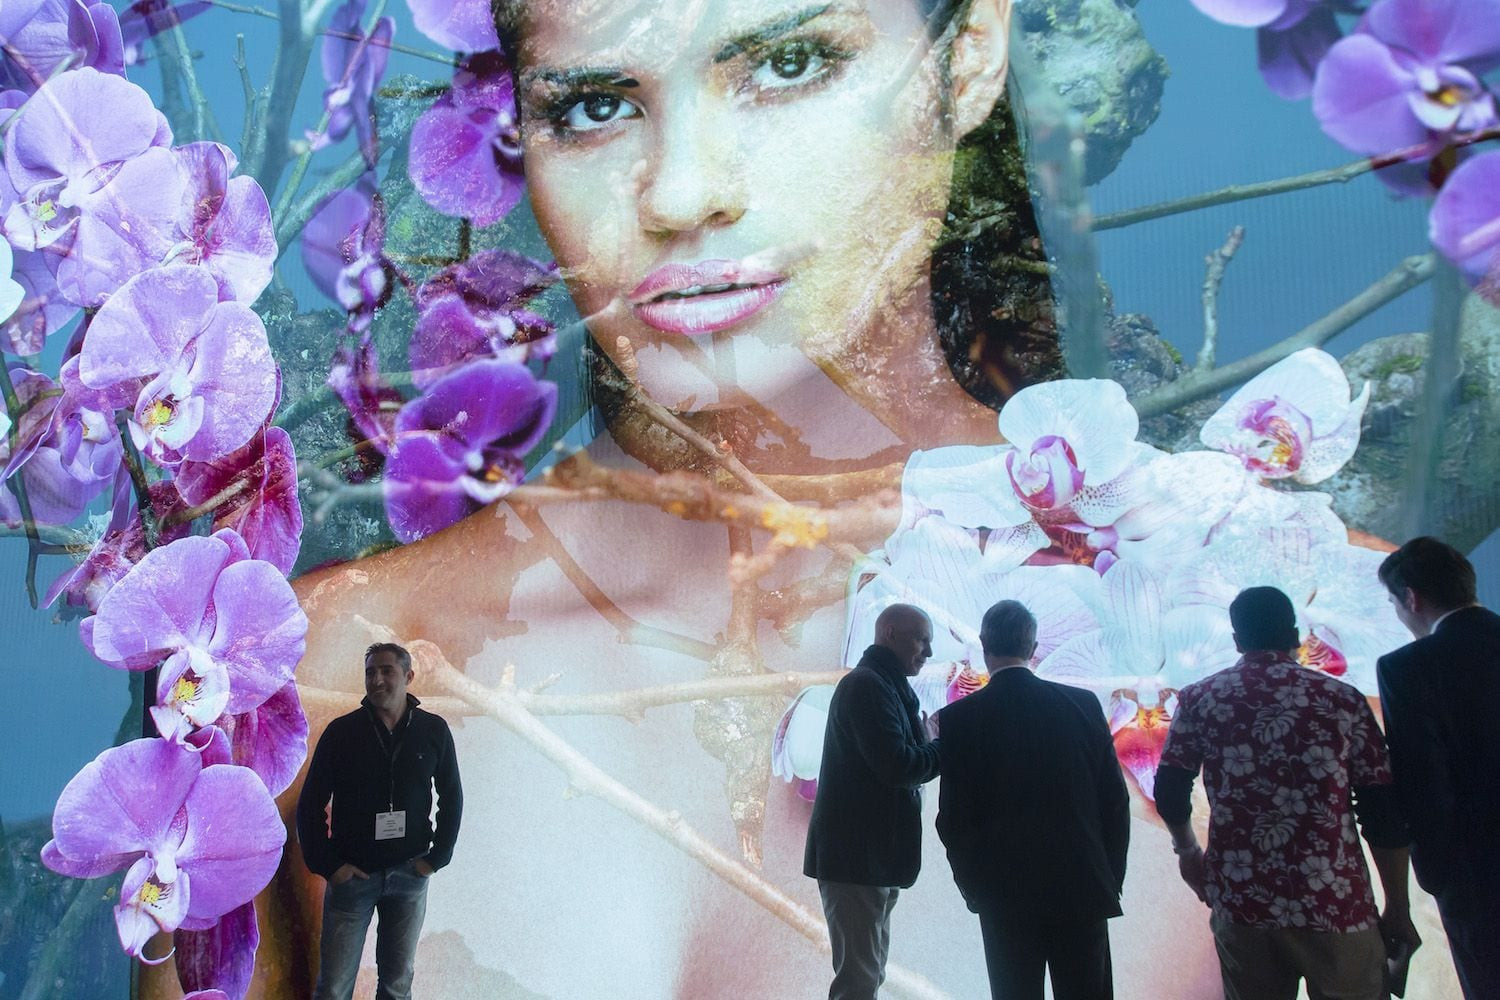 womens face on large screen audiovisual display at ise